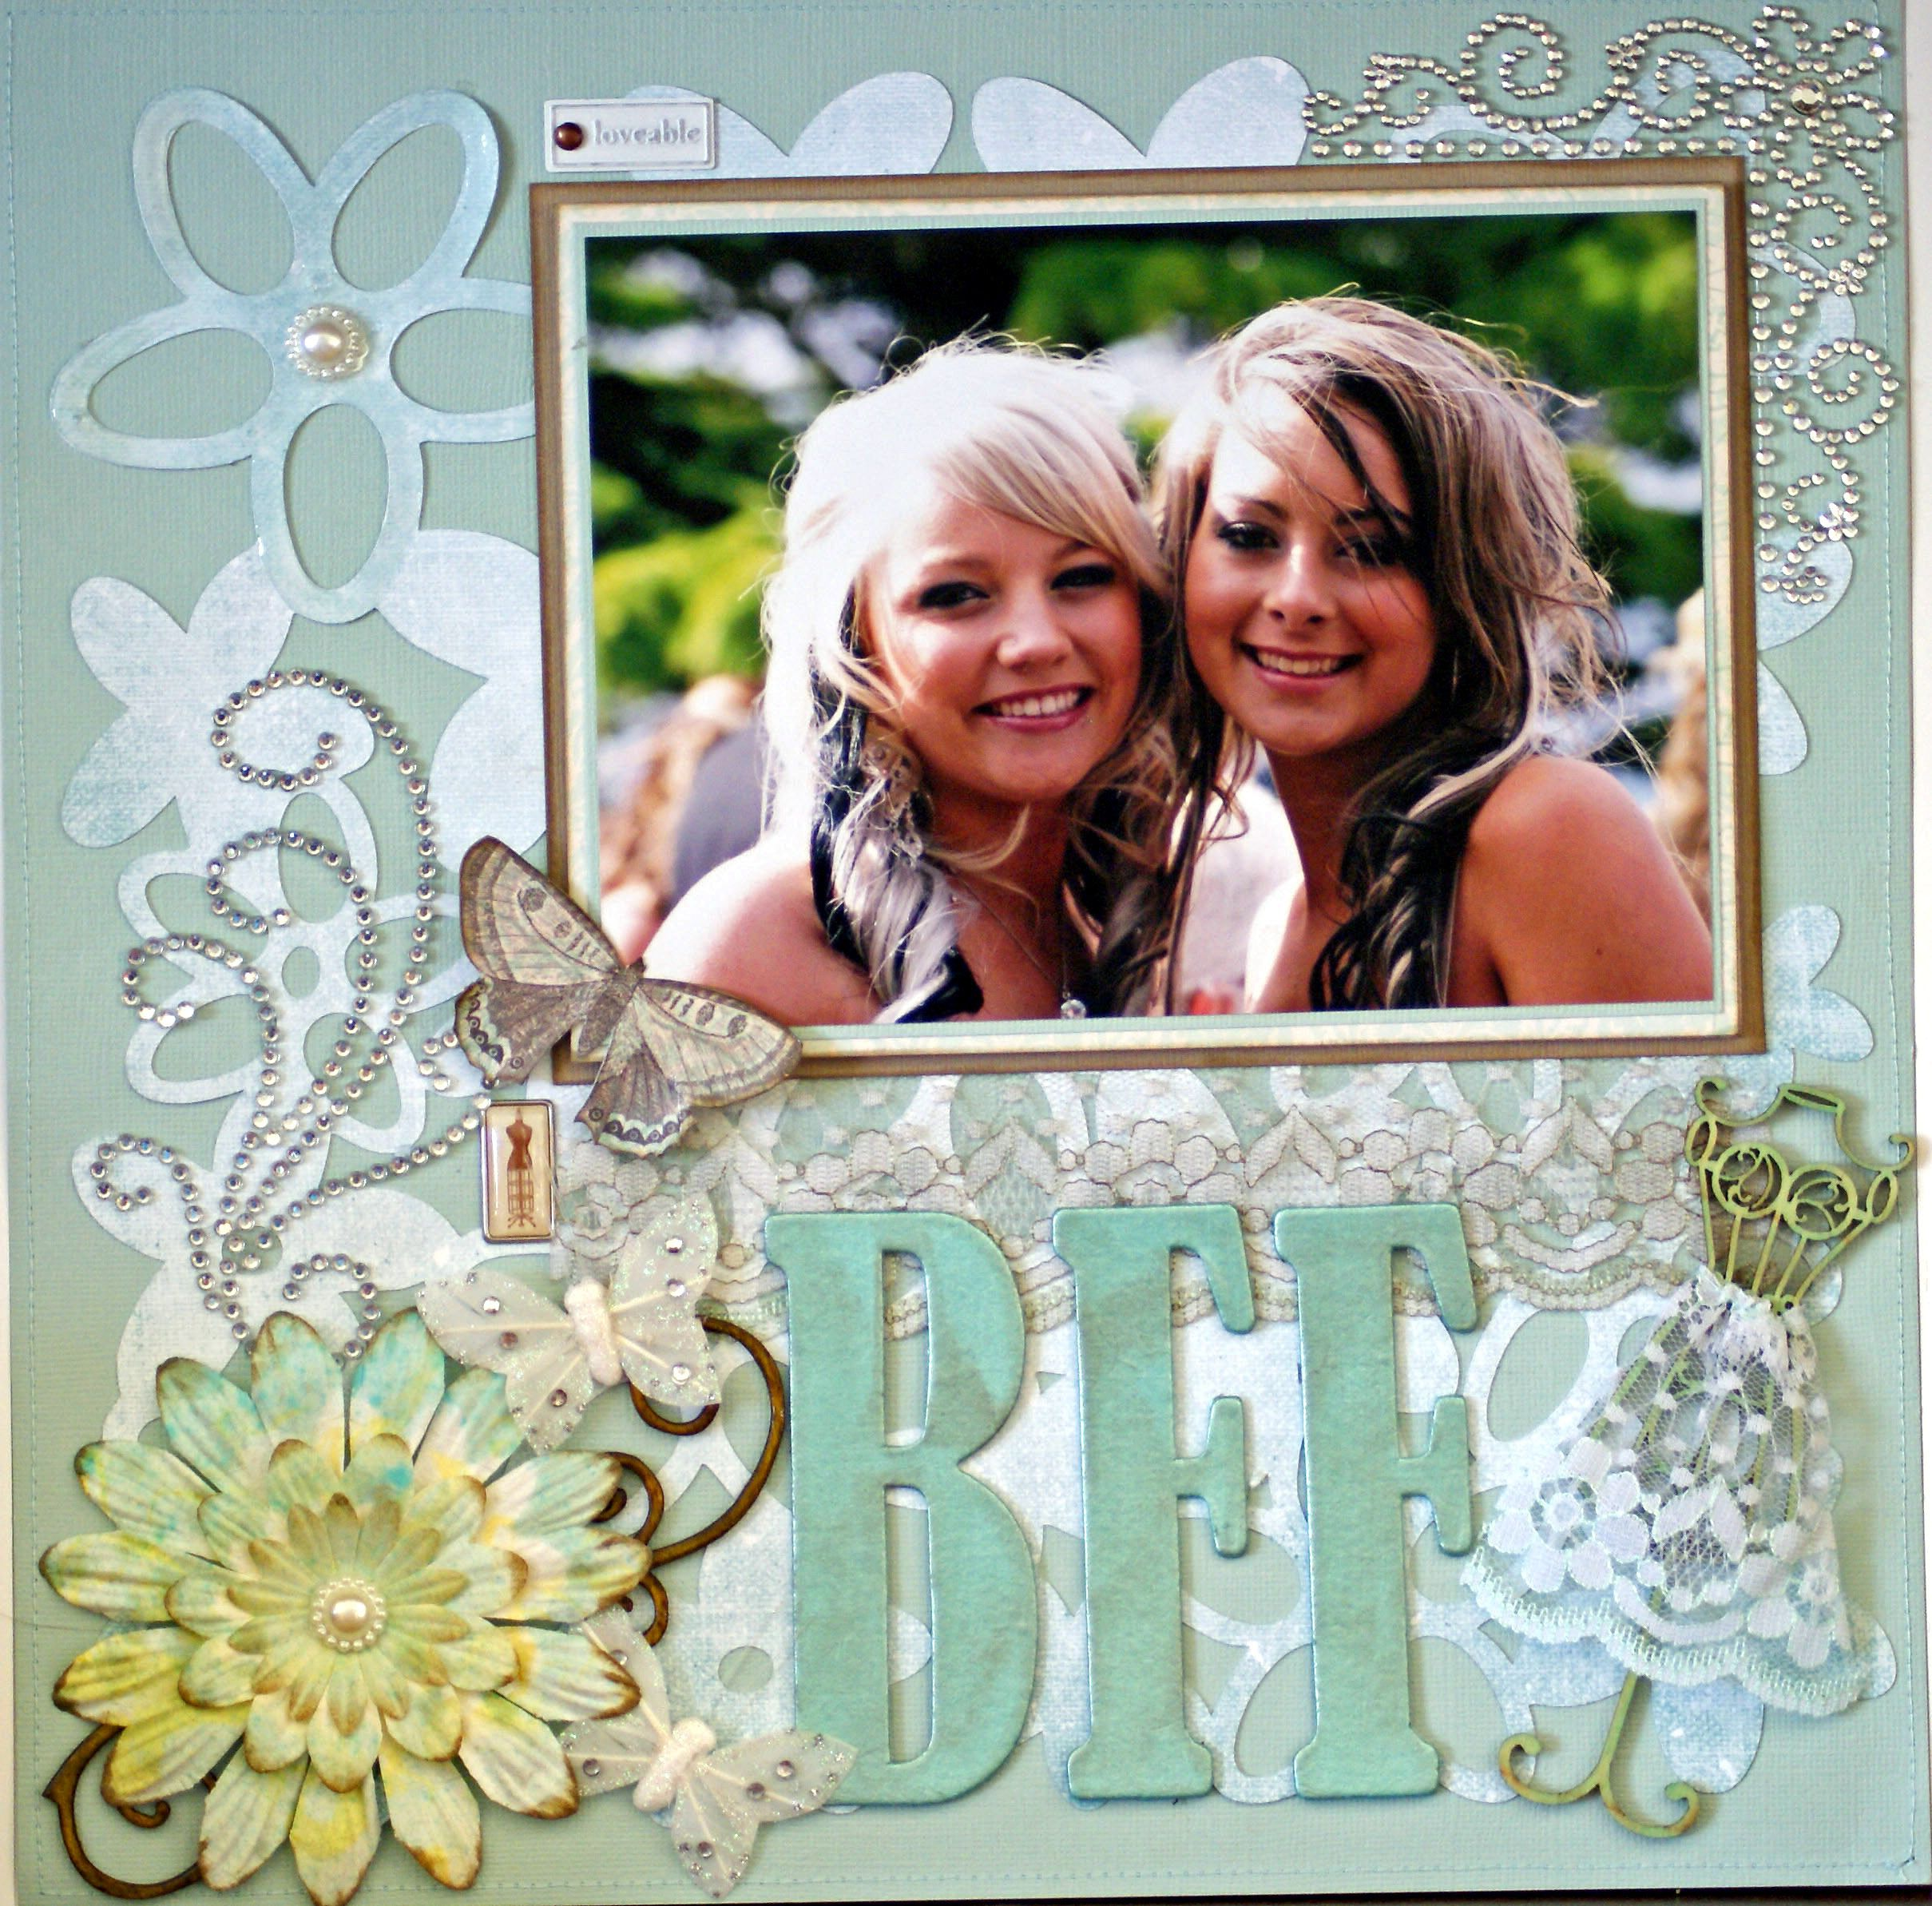 Scrapbook ideas for bff - This Is A Fantastic Idea For A Present Collect Photos Of You And Your Best